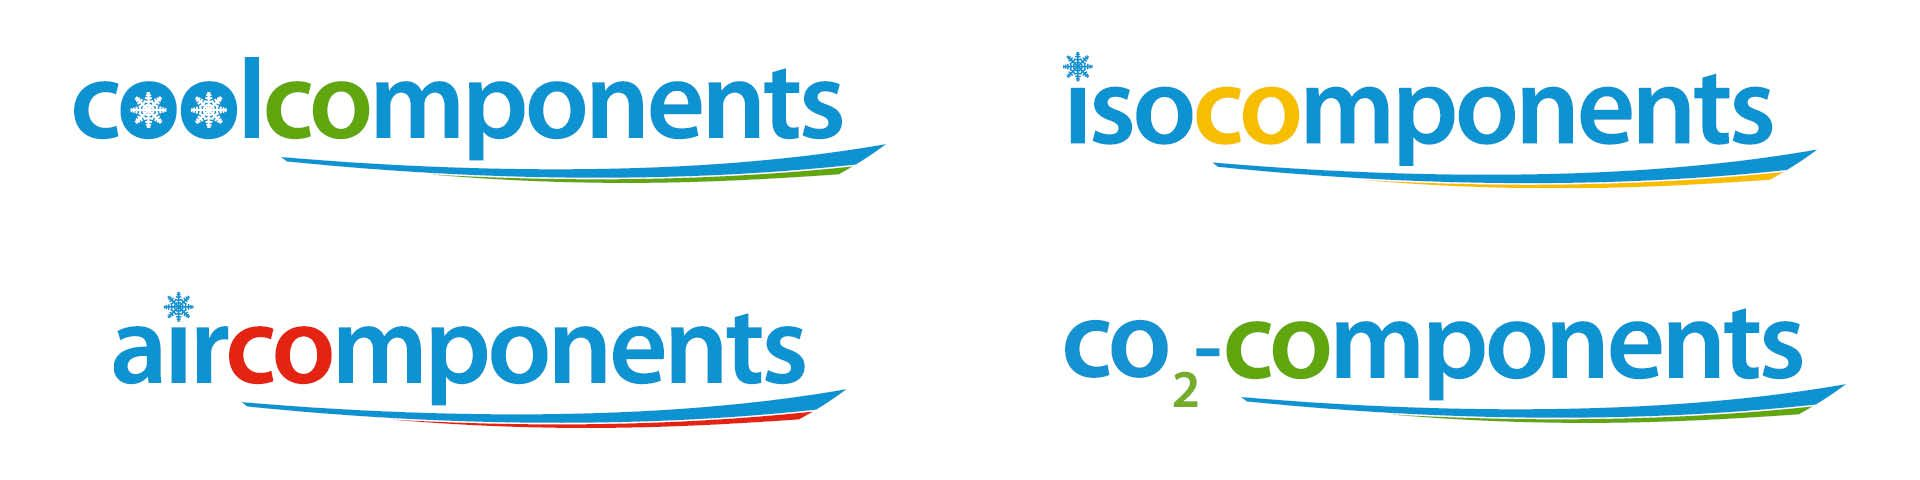 logo's Coolcomponents, Aircomponents, Isocomponents en CO2-Components